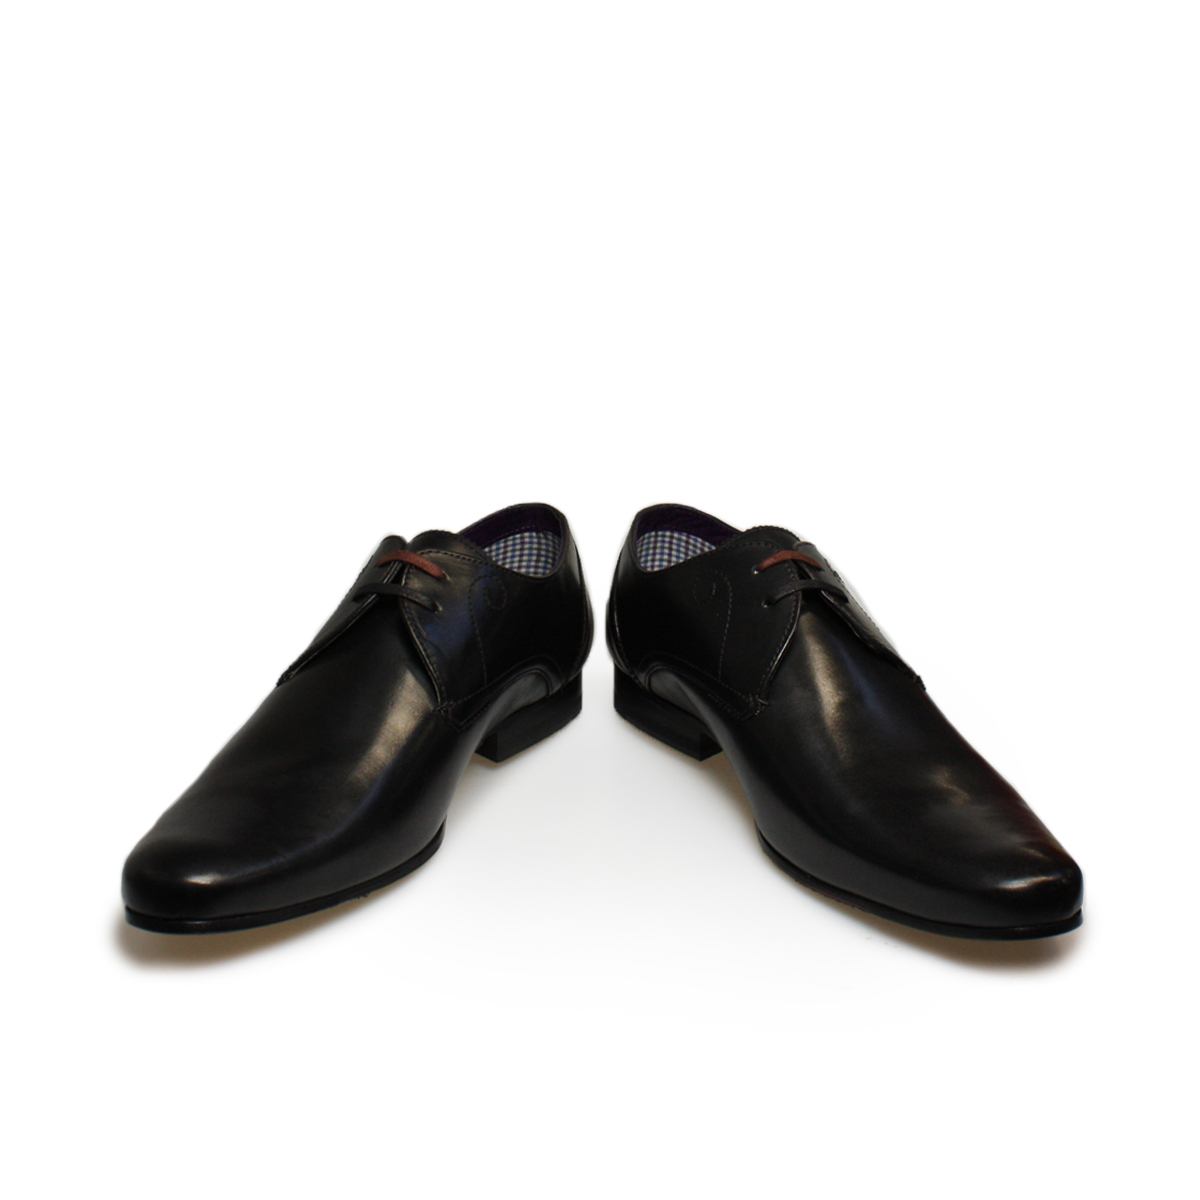 ted baker shoes philippines entertainment companies in lakeland